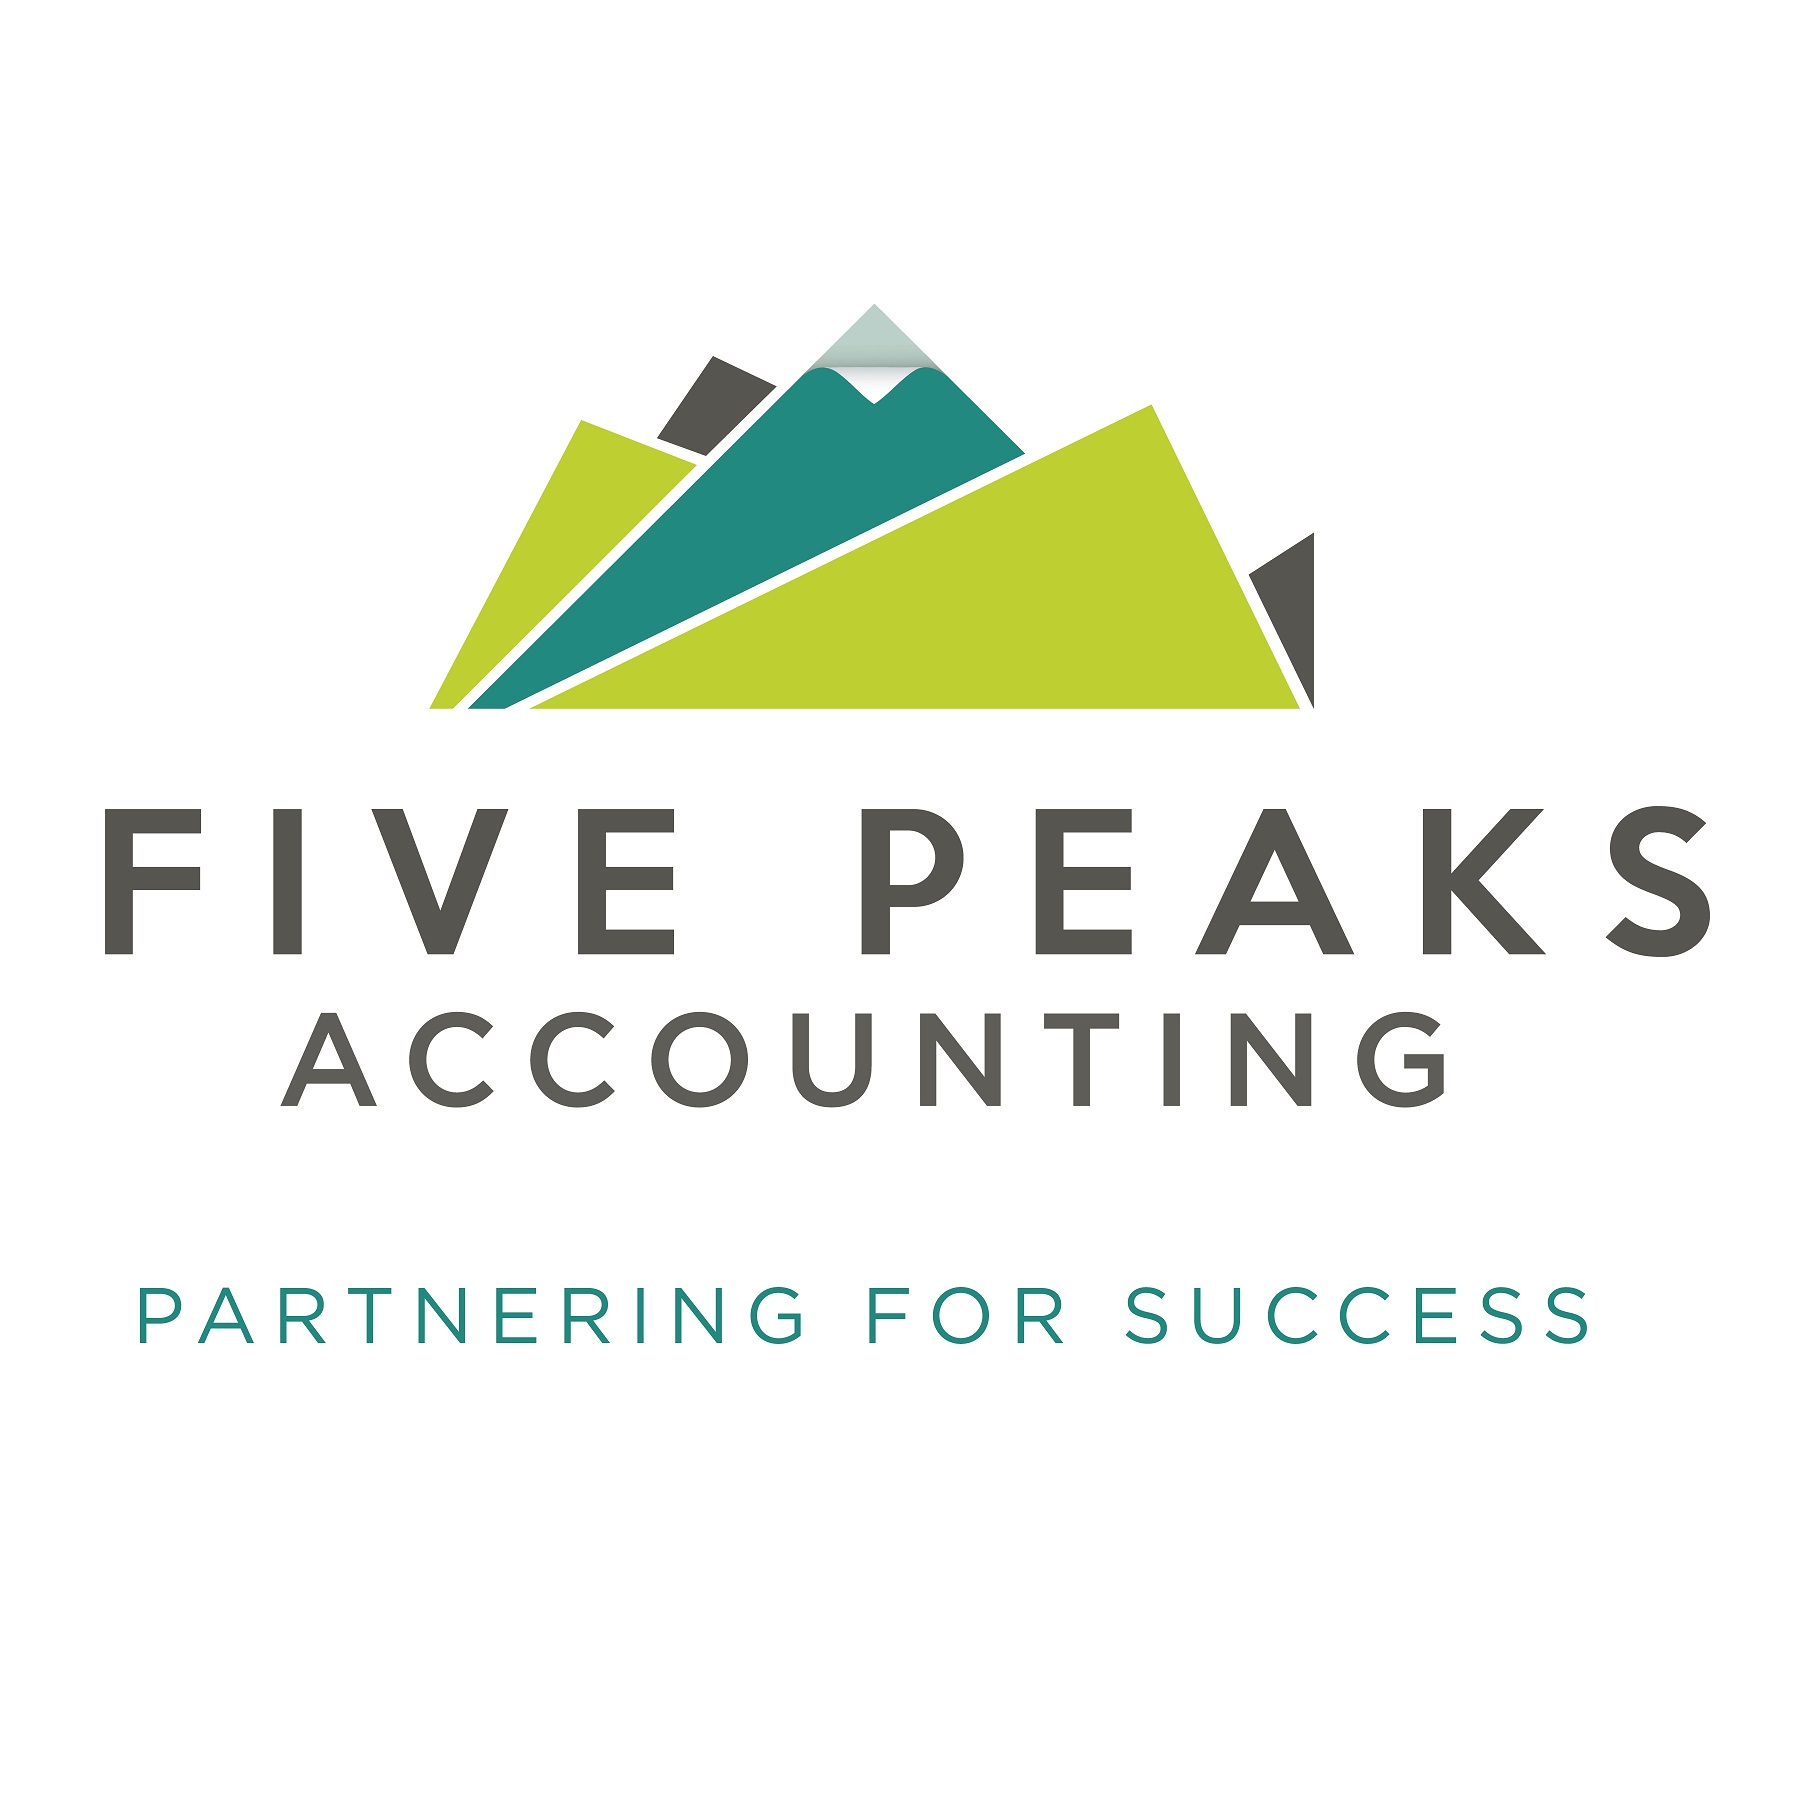 Five Peaks Accounting Limited